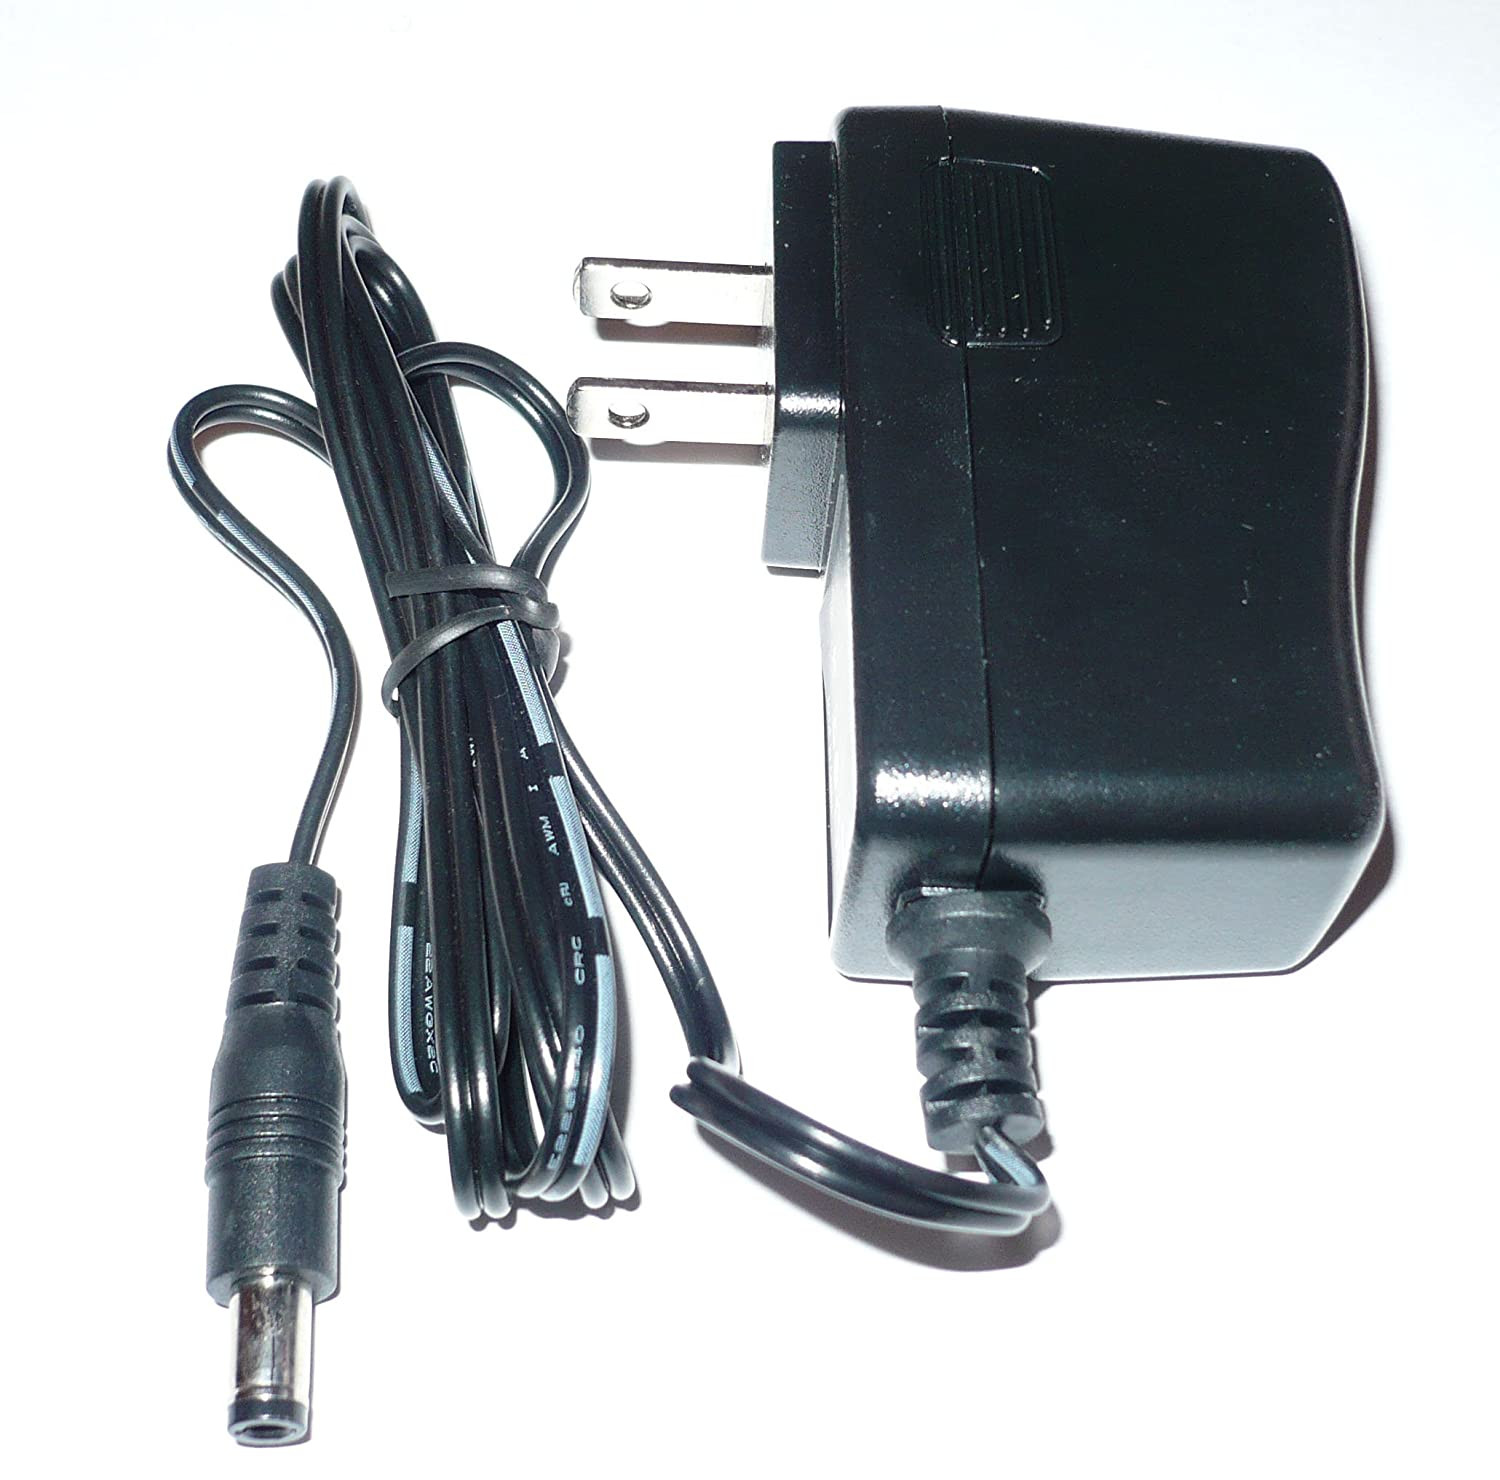 Amazon.com: 2Wire Power Supply 2900-800007-000 for 1800HG Modems ...